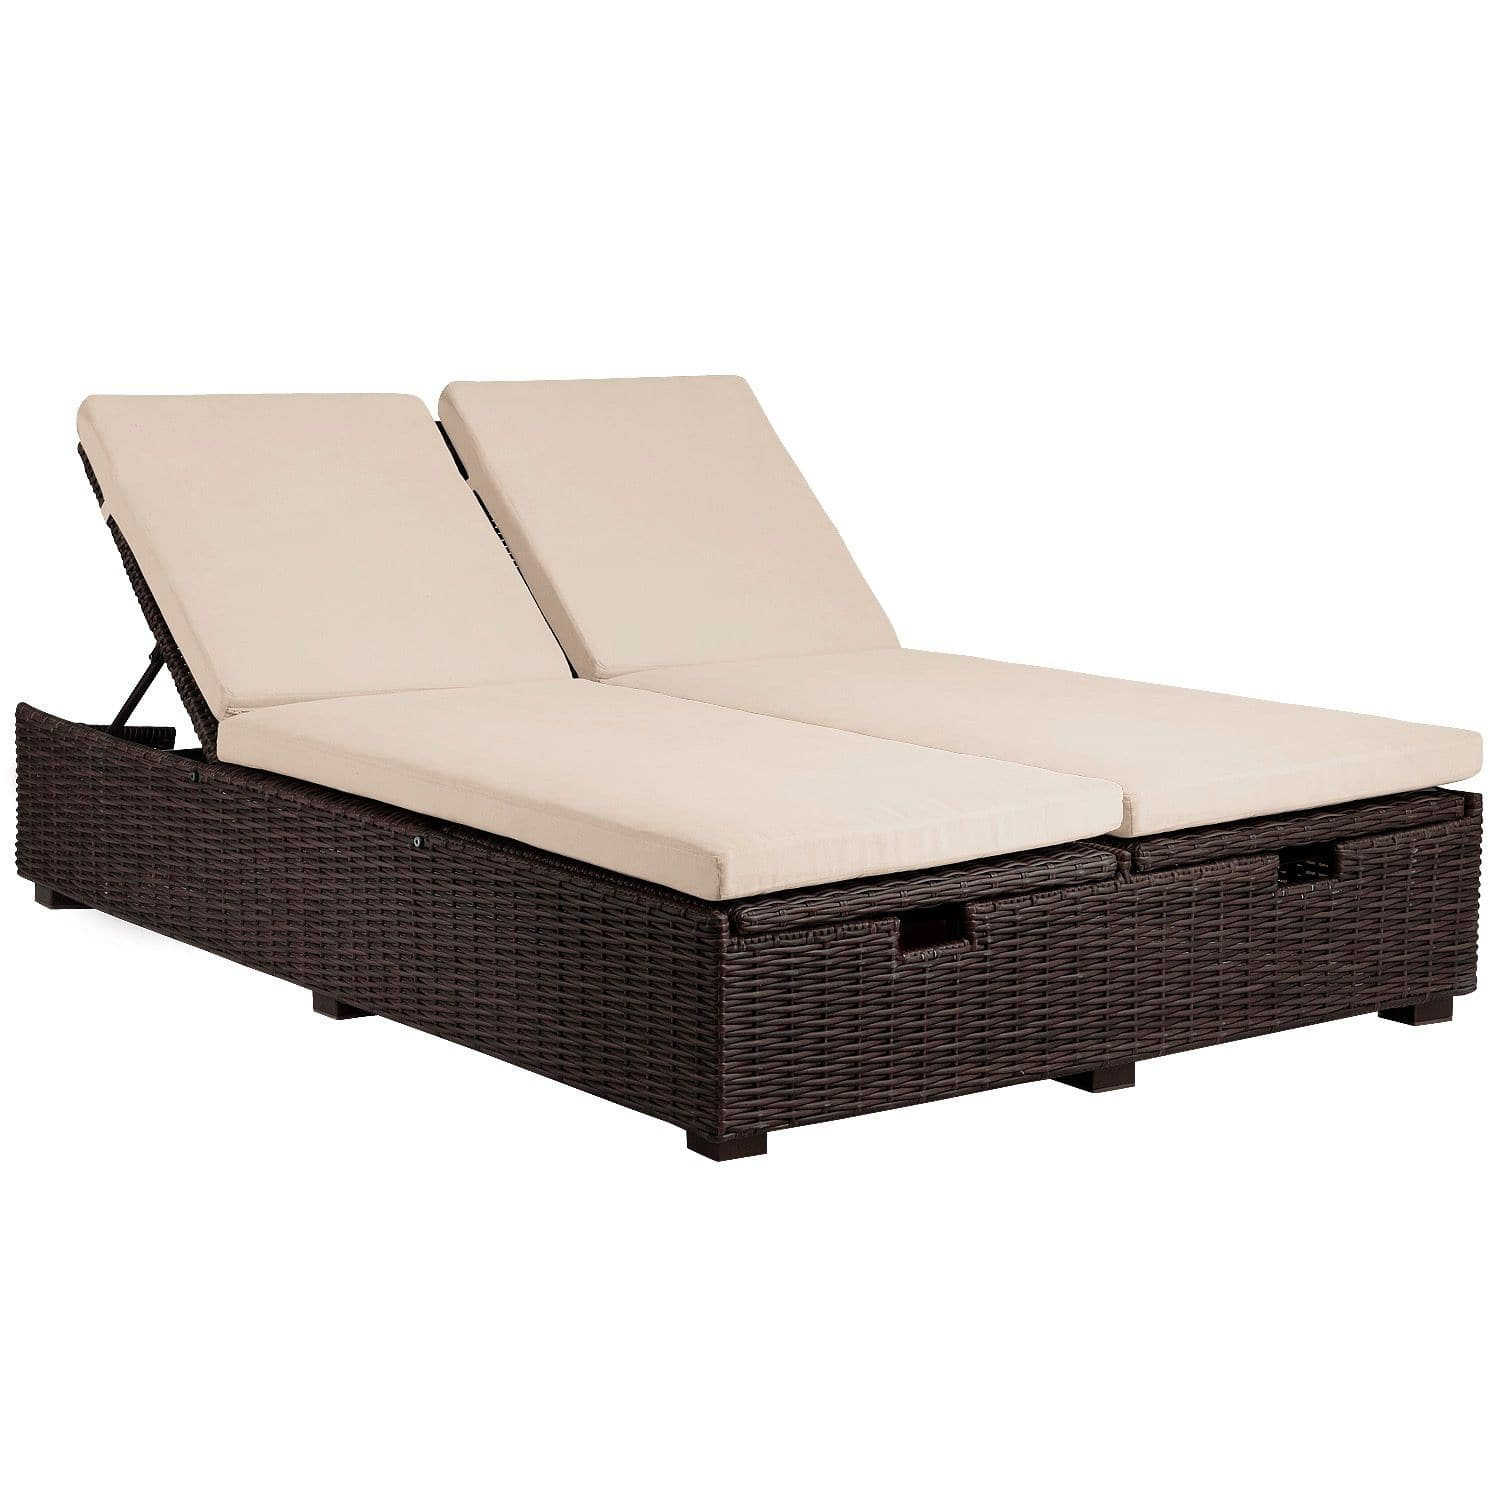 Ymmv Echo Beach Collection Brown Double Chaise Lounge 64 98 Pier1